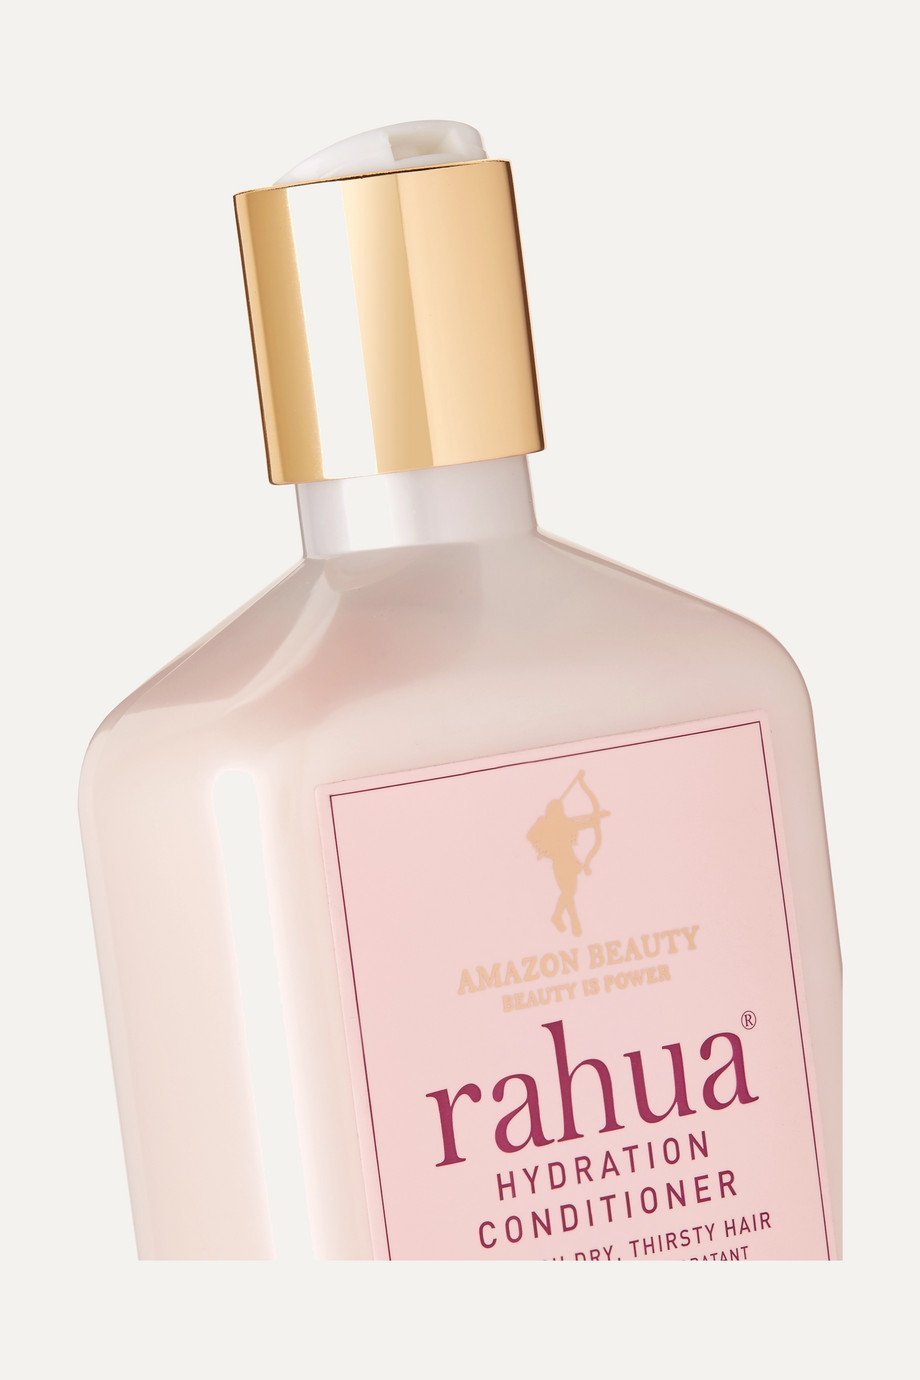 Rahua Hydration Conditioner, 275ml